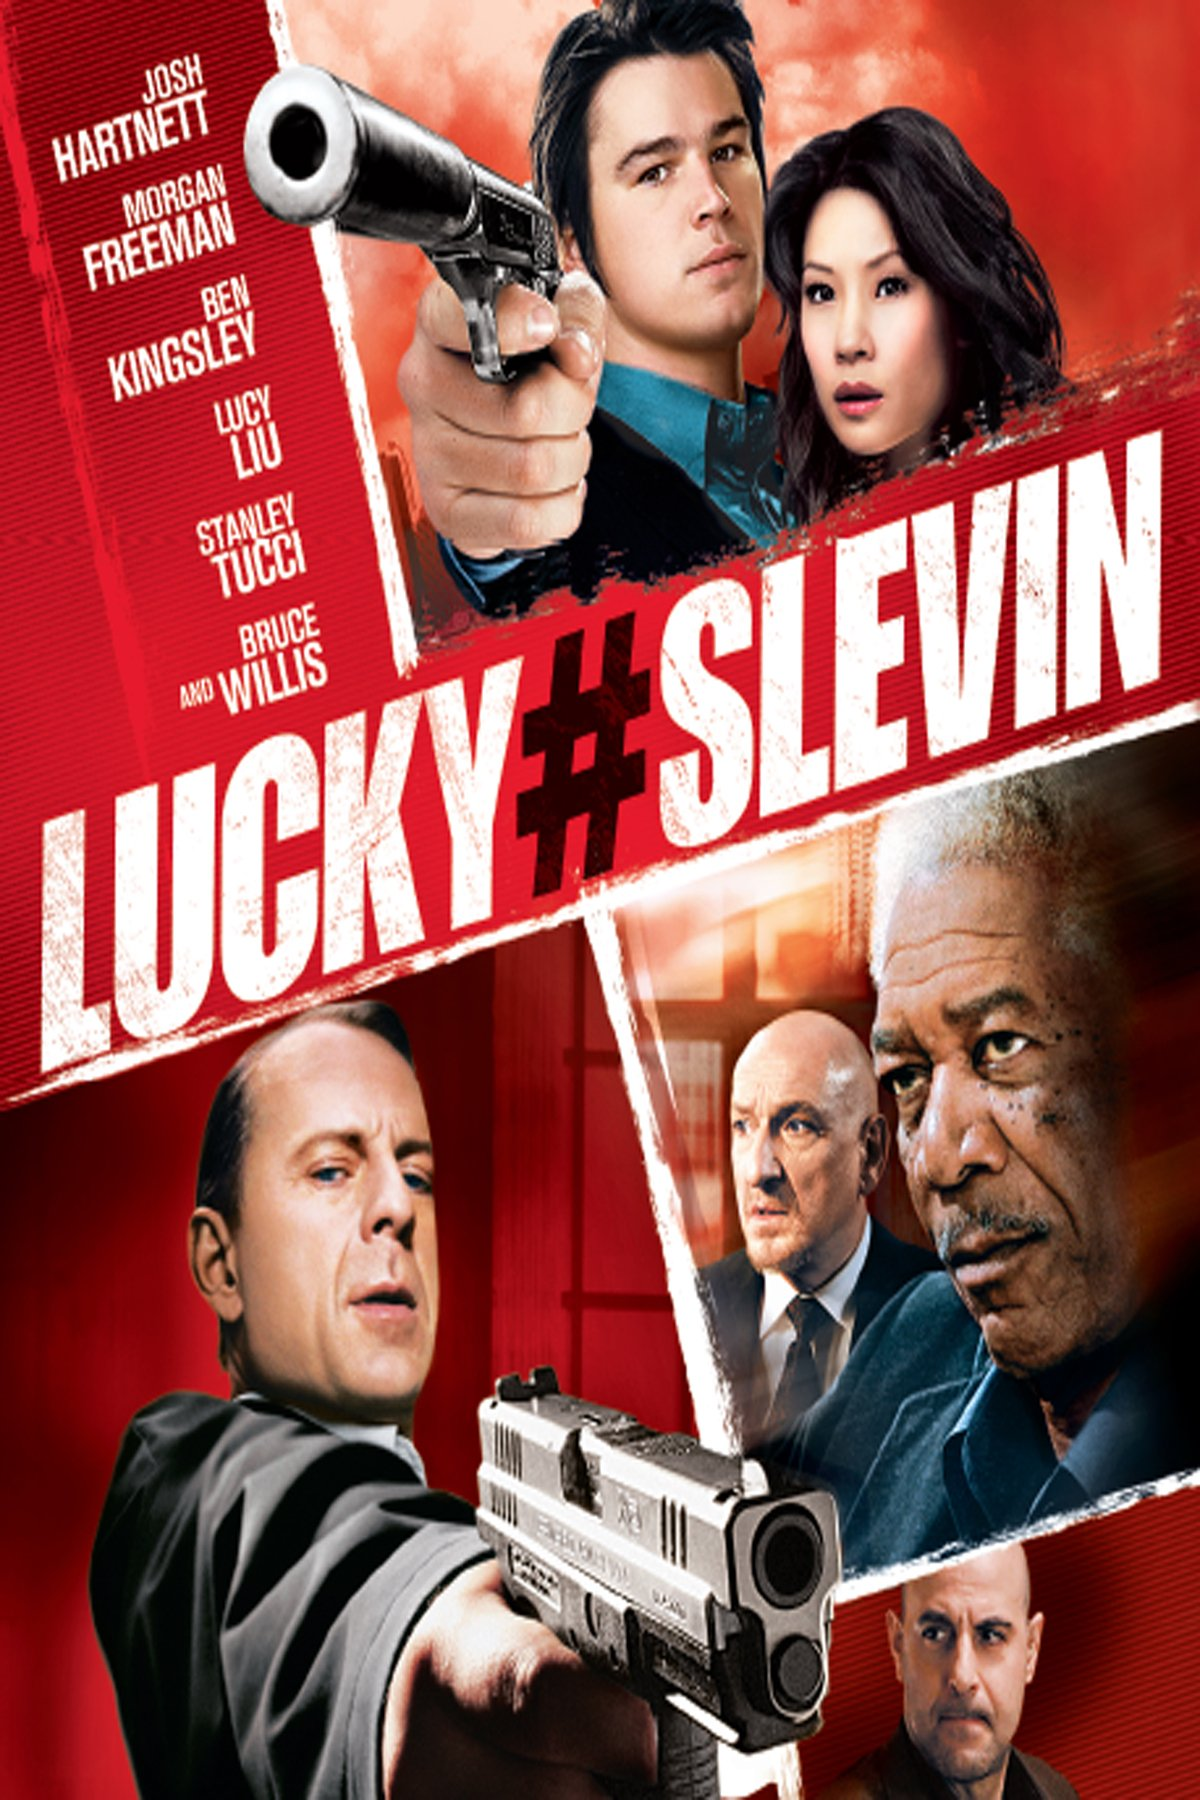 lucky number slevin parents guide